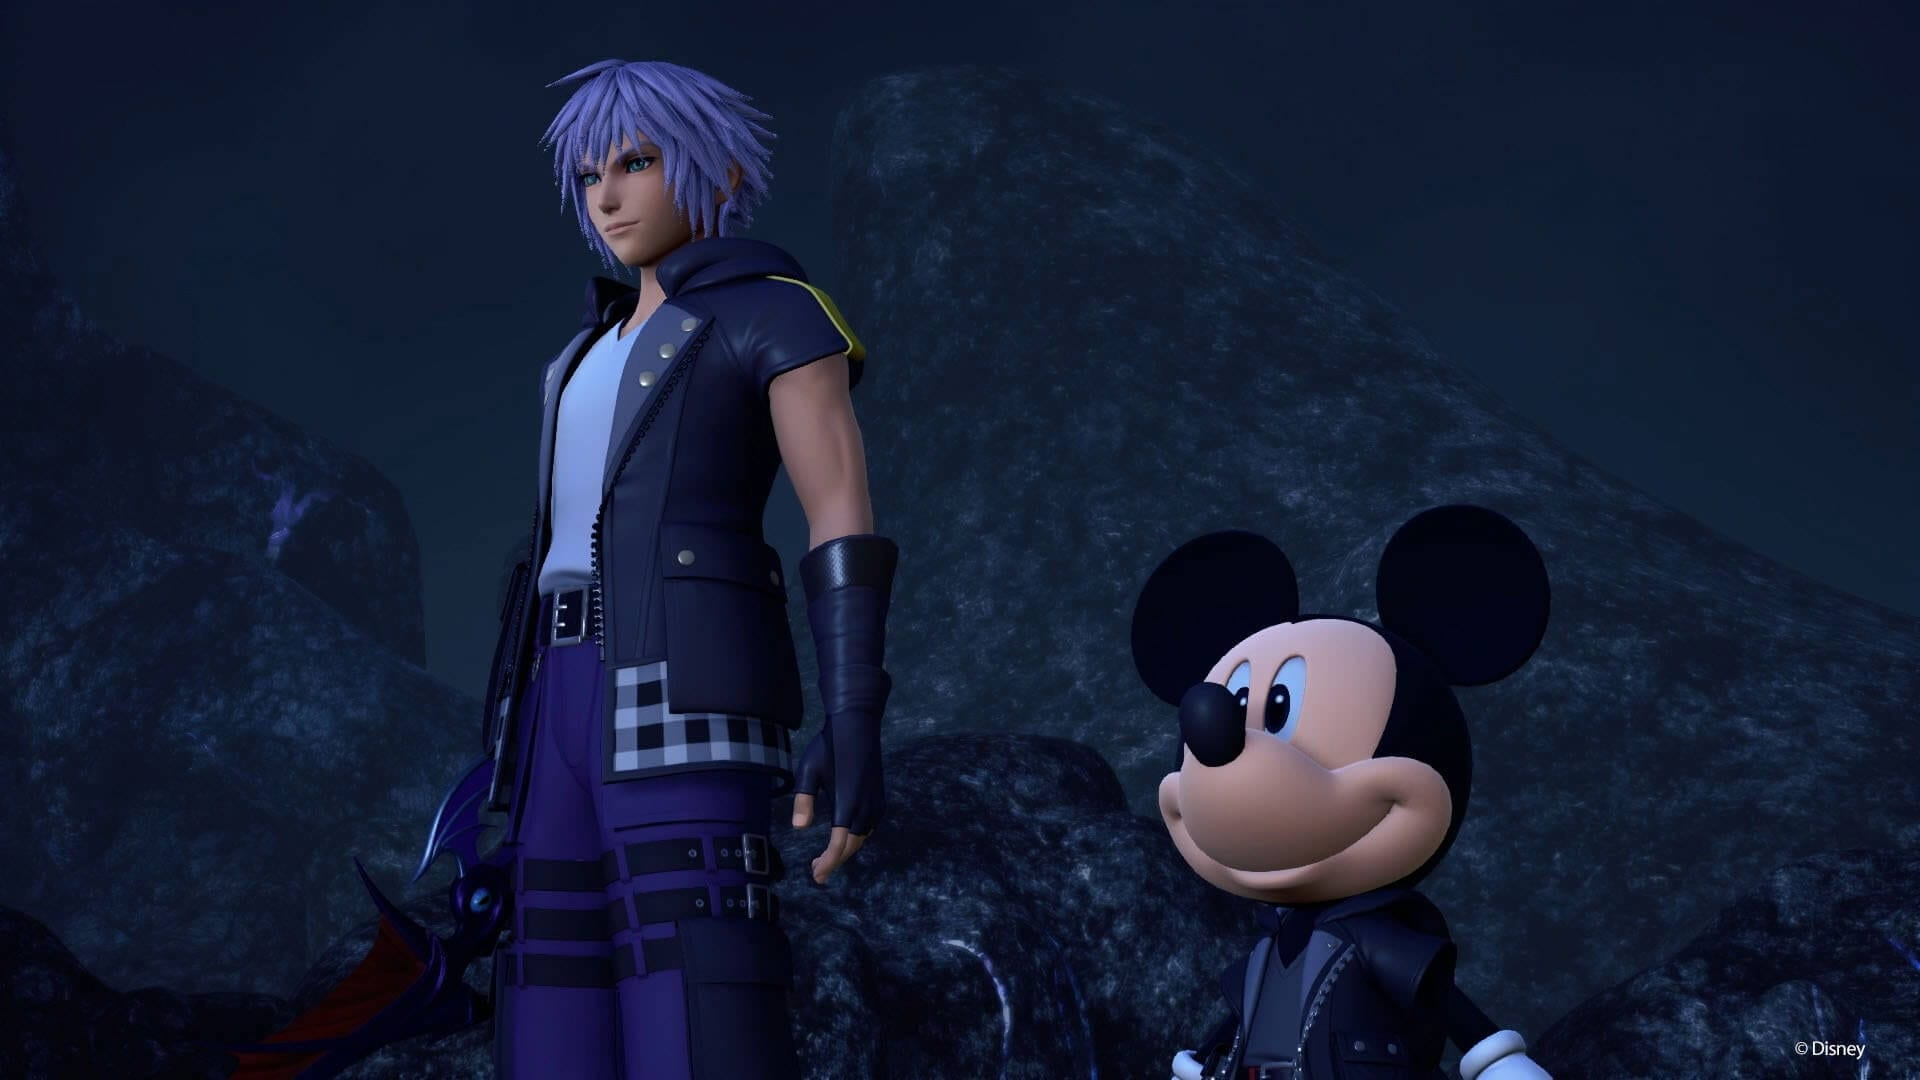 Kingdom Hearts 3: Impressions at 13 hours